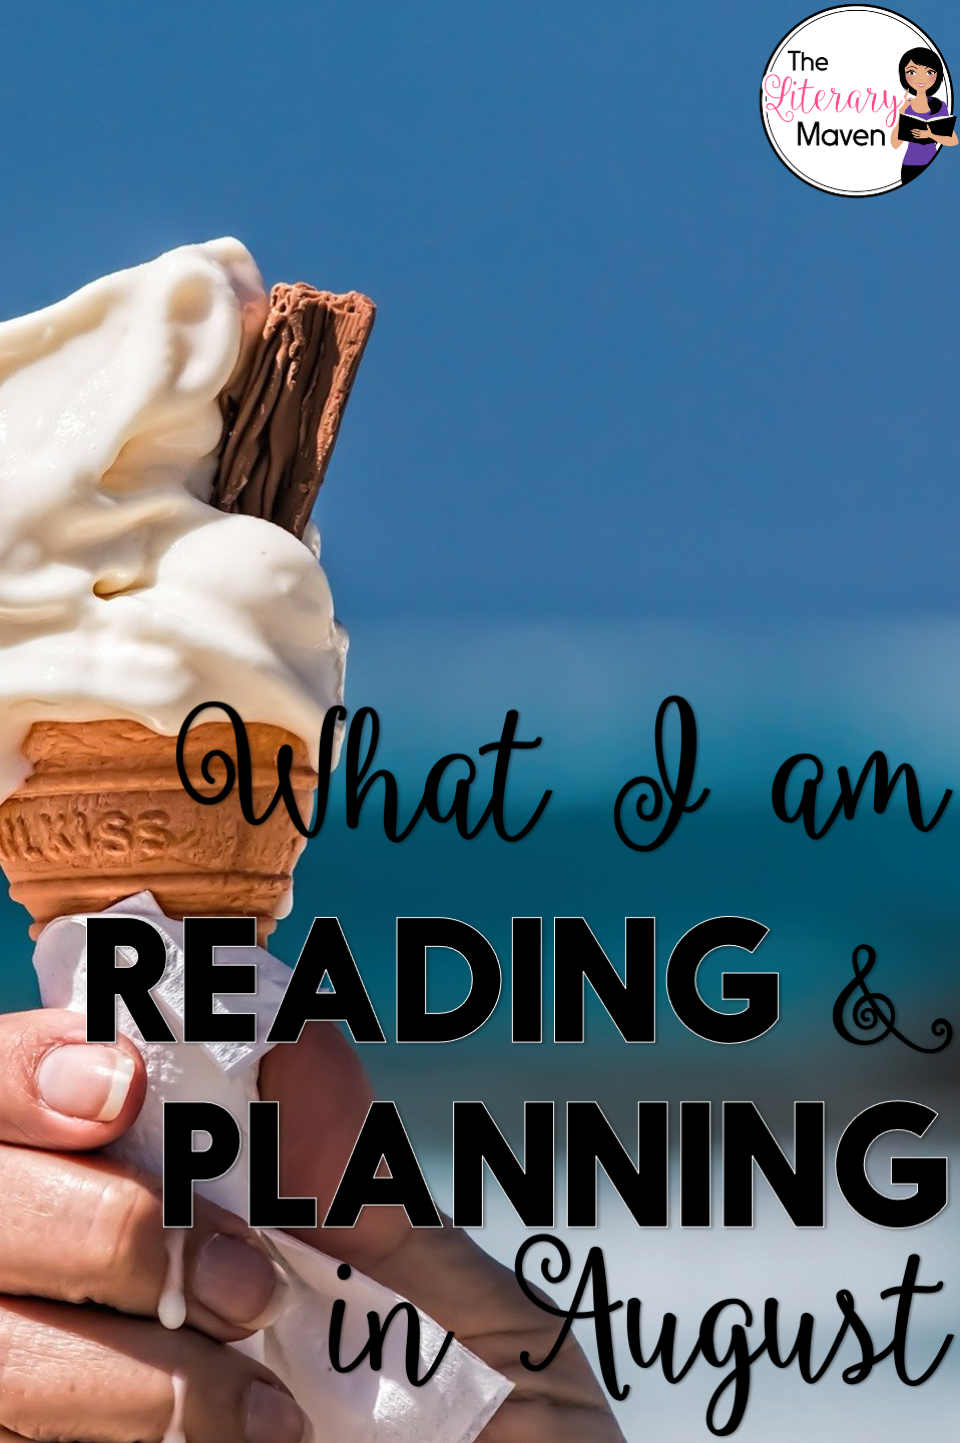 School starts up at end of August, but until then I'm enjoying summer. Here's my TBR list for the month and an update on my writing instruction plans.